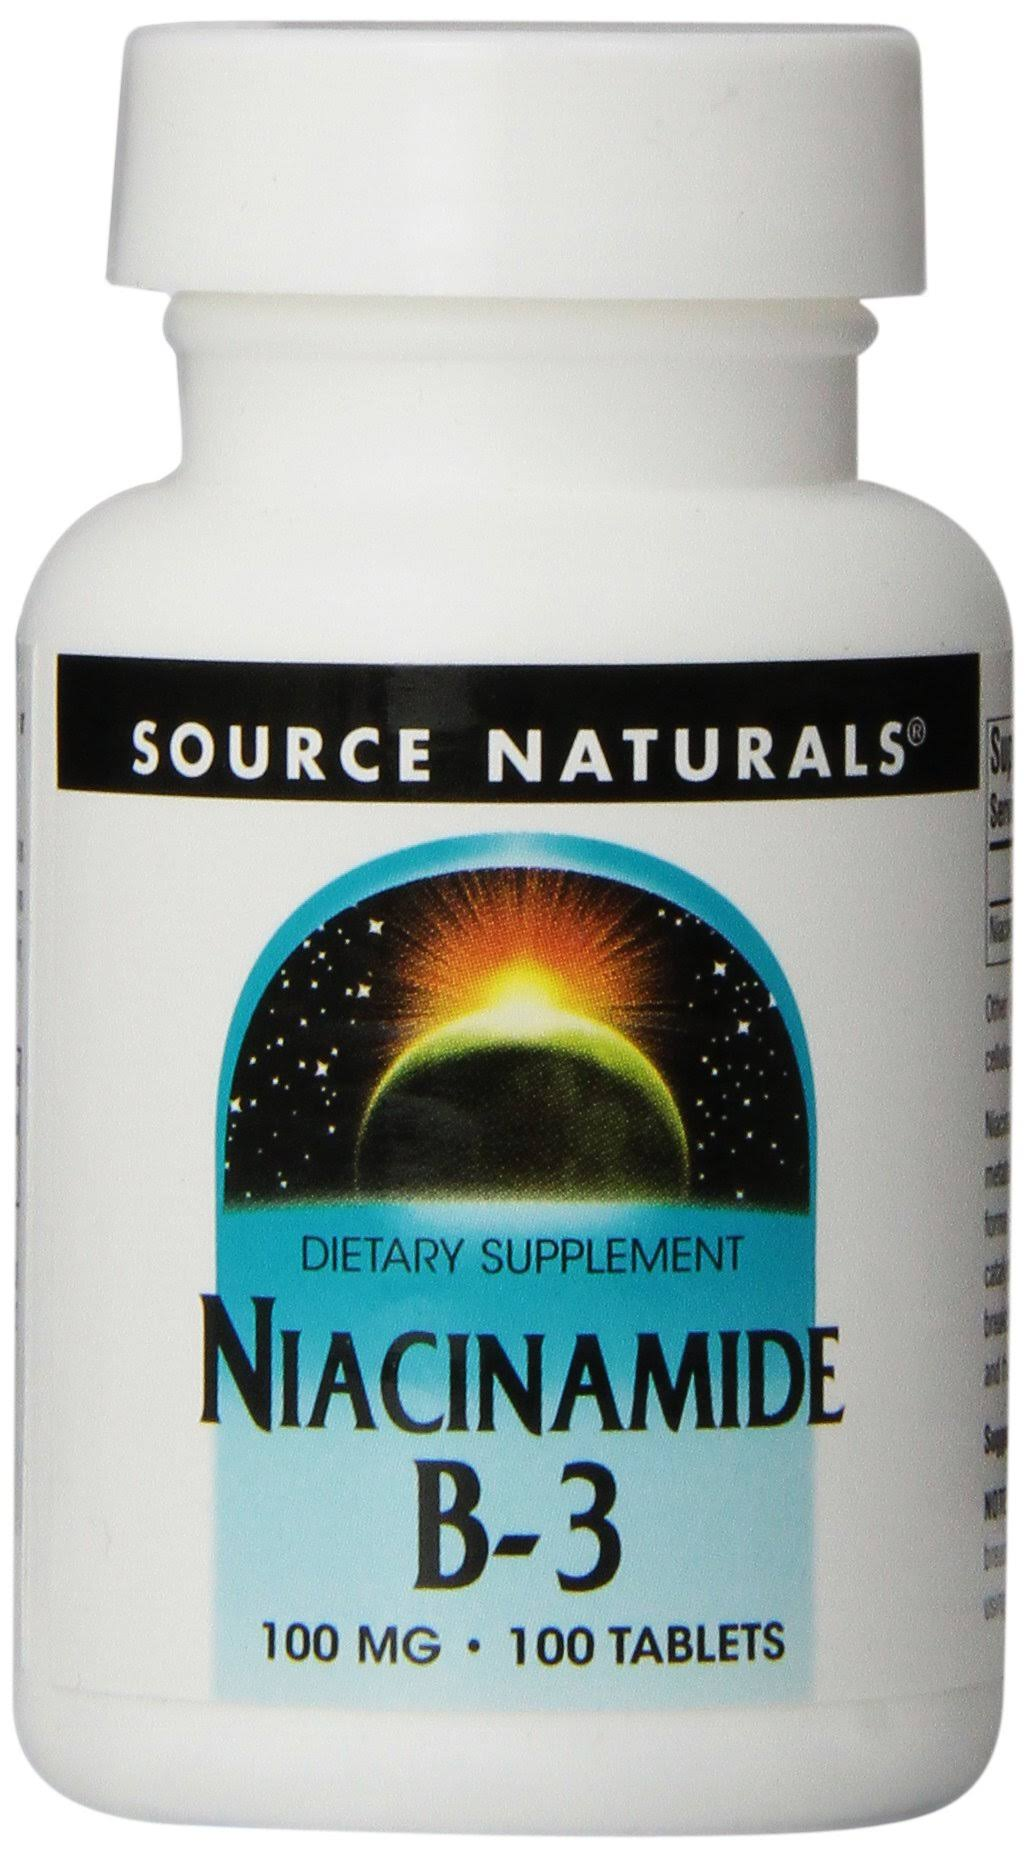 Source Naturals Niacinamide Dietary Supplement - 100 Tablets